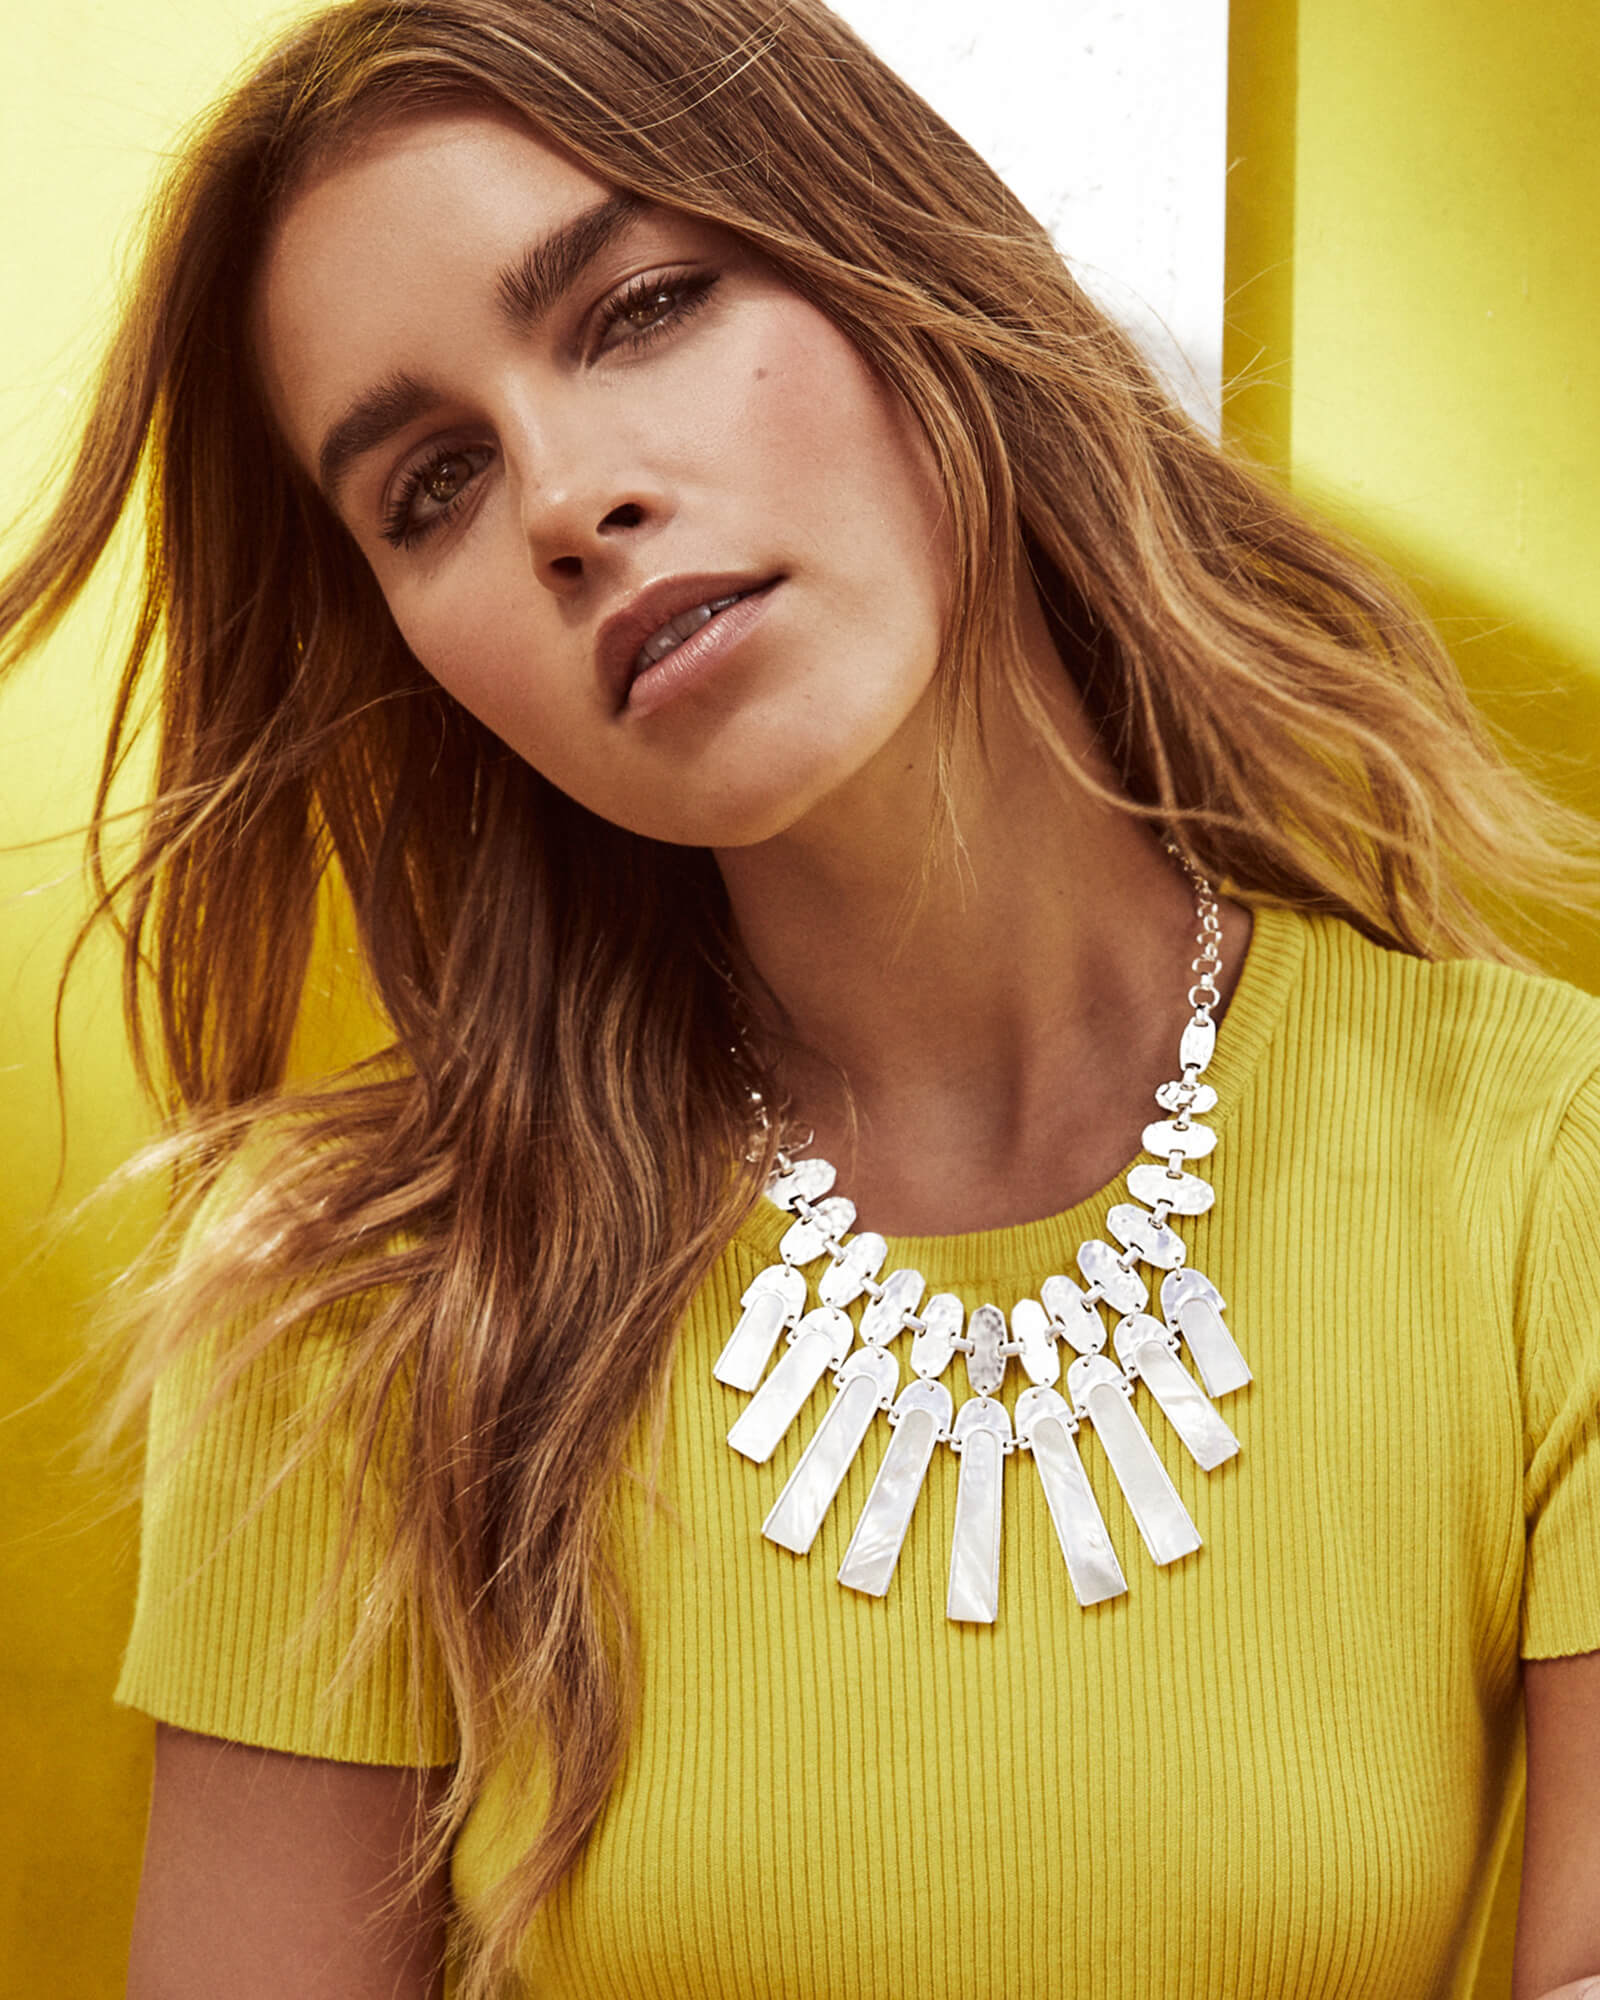 wearing a statement necklace